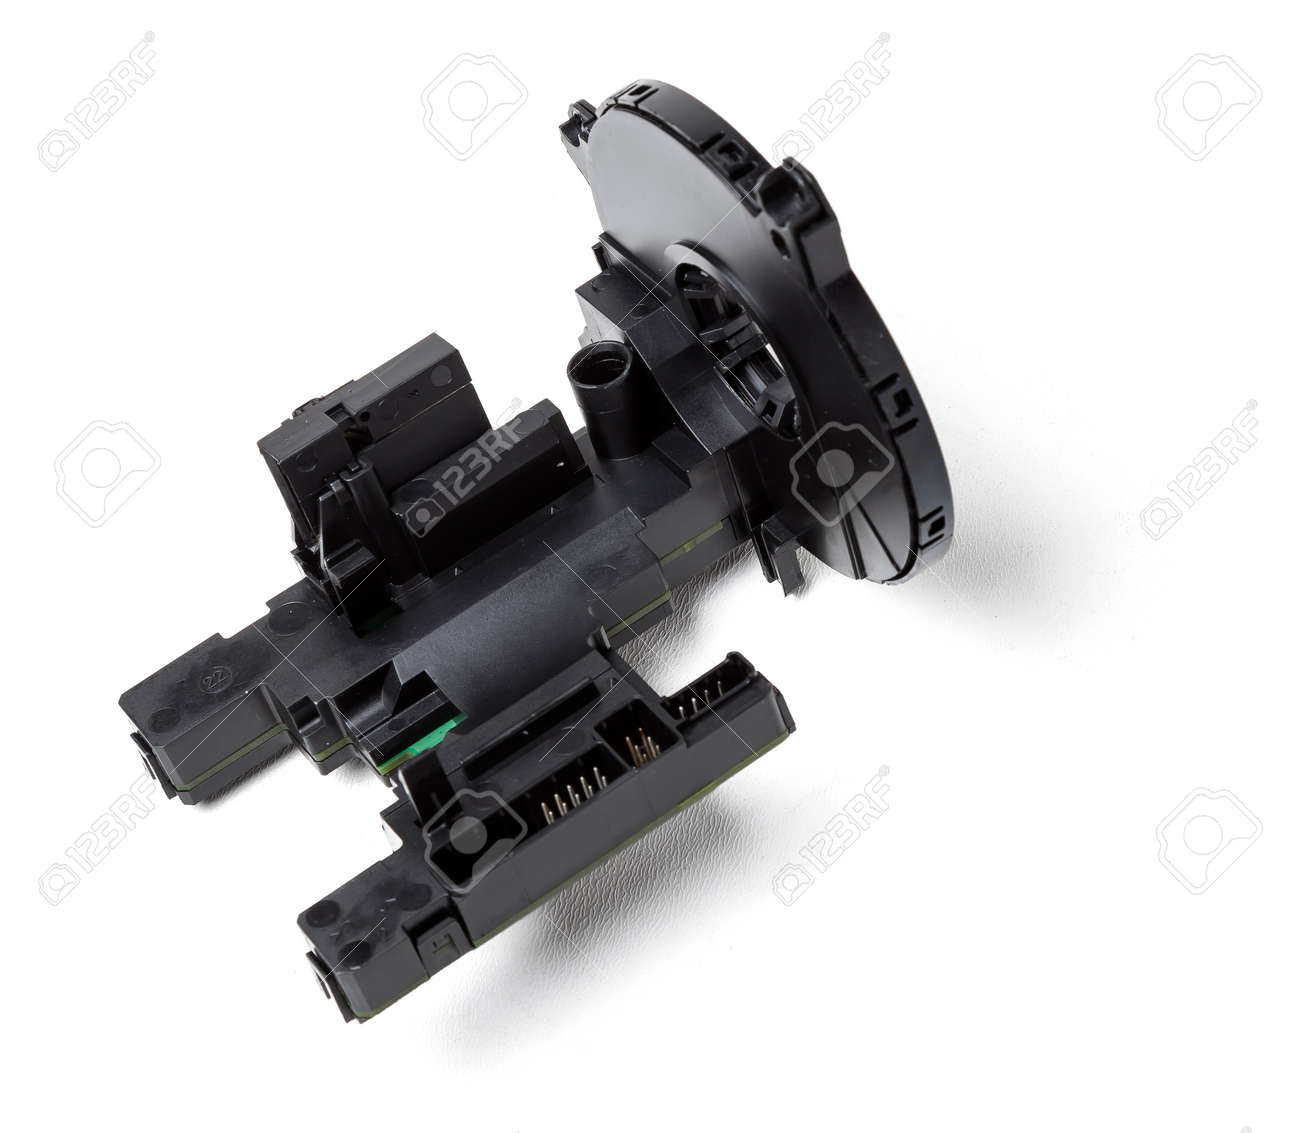 steering angle sensor disassembled on a white isolated background, spare part for car repair or for sale at junk yard. - 169388033